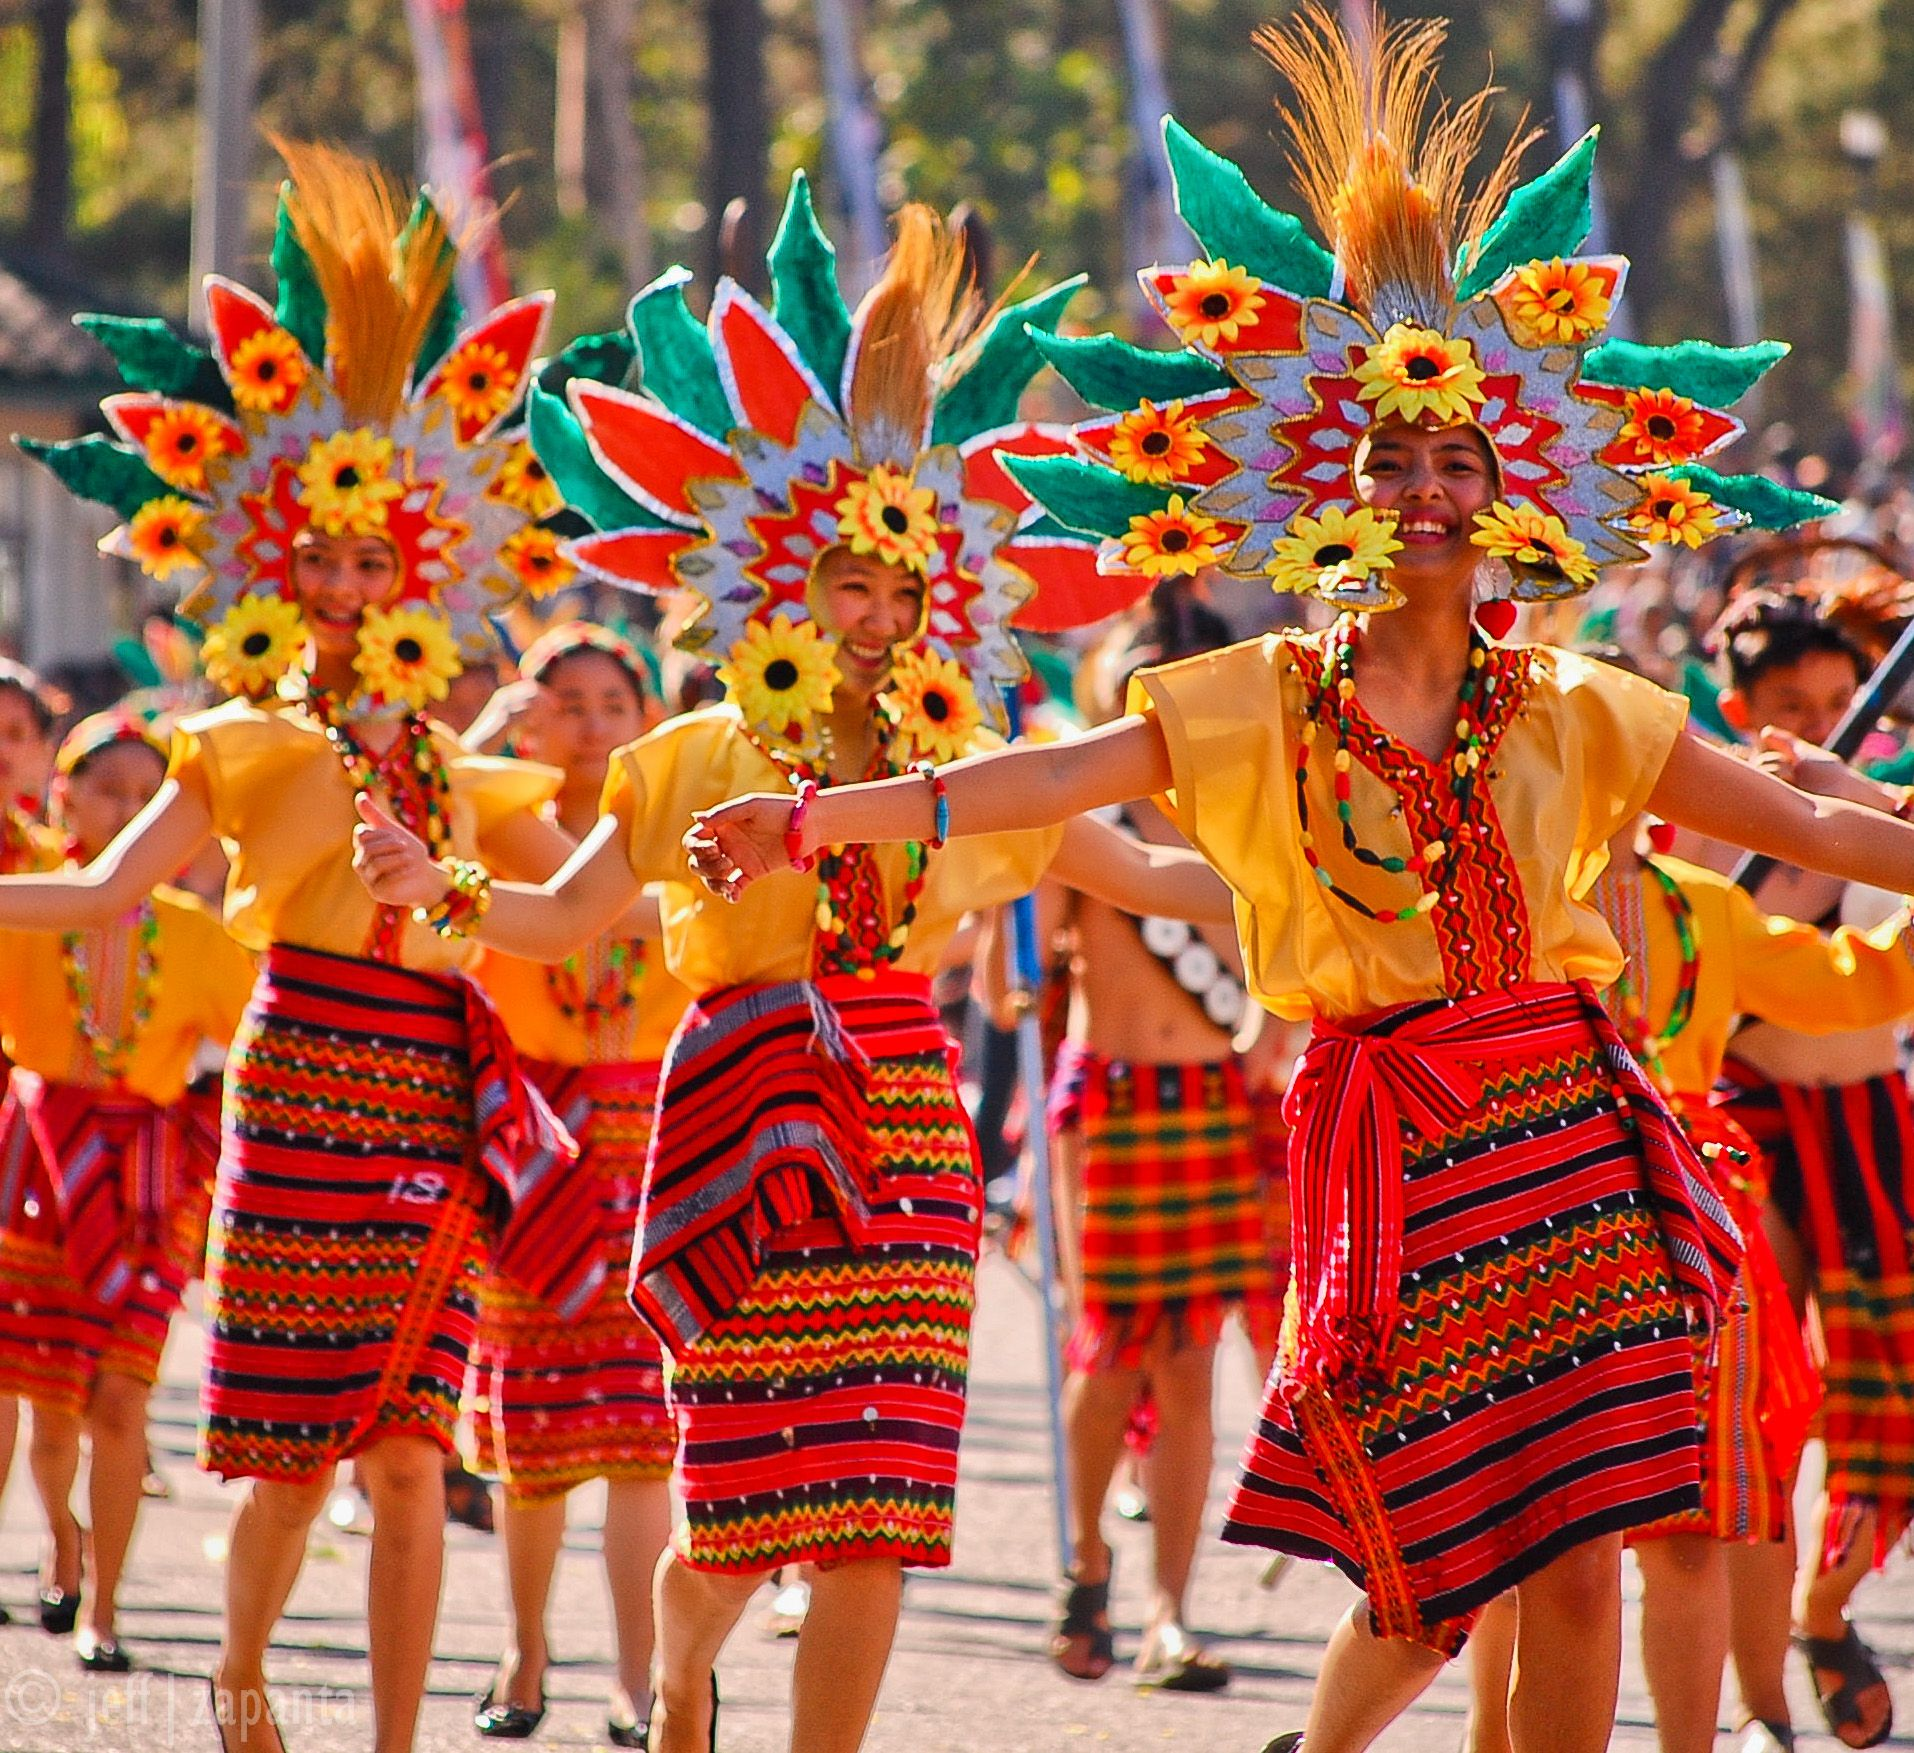 Baguio City's Panagbenga Festival is one of the longest